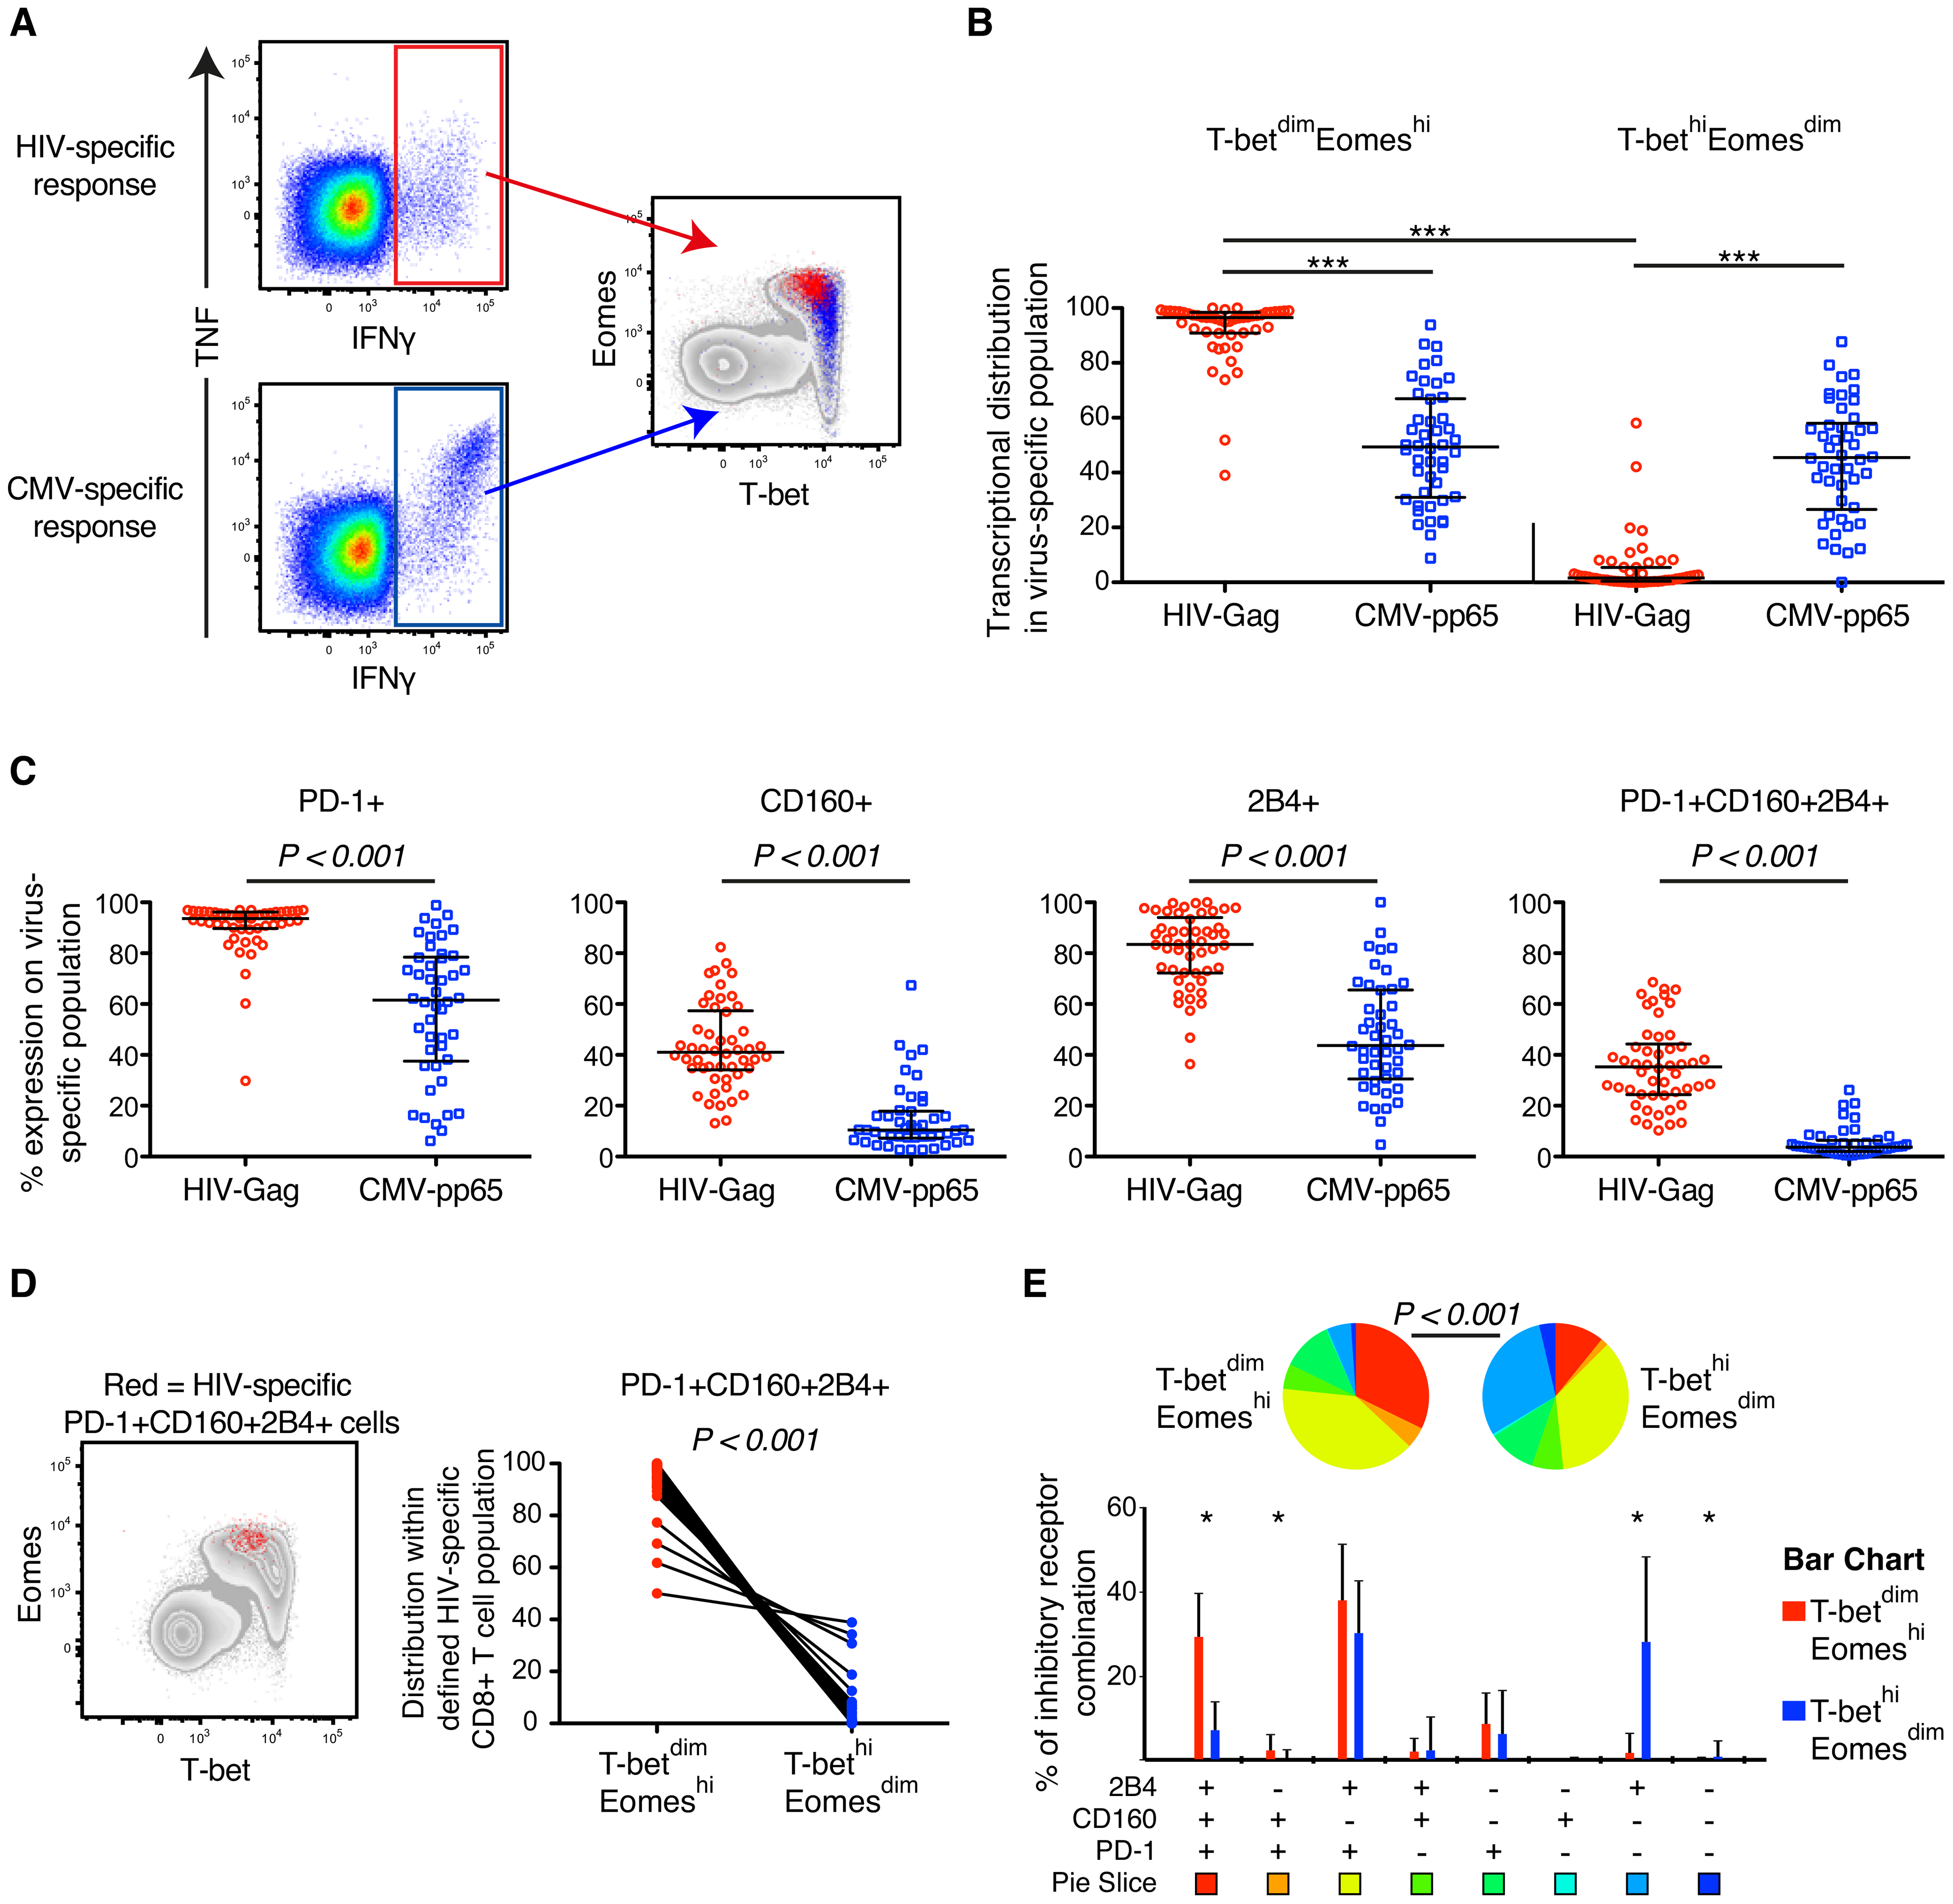 HIV- and CMV-specific CD8+ T cell expression of inhibitory receptors and T-bet/Eomes in untreated HIV infection.